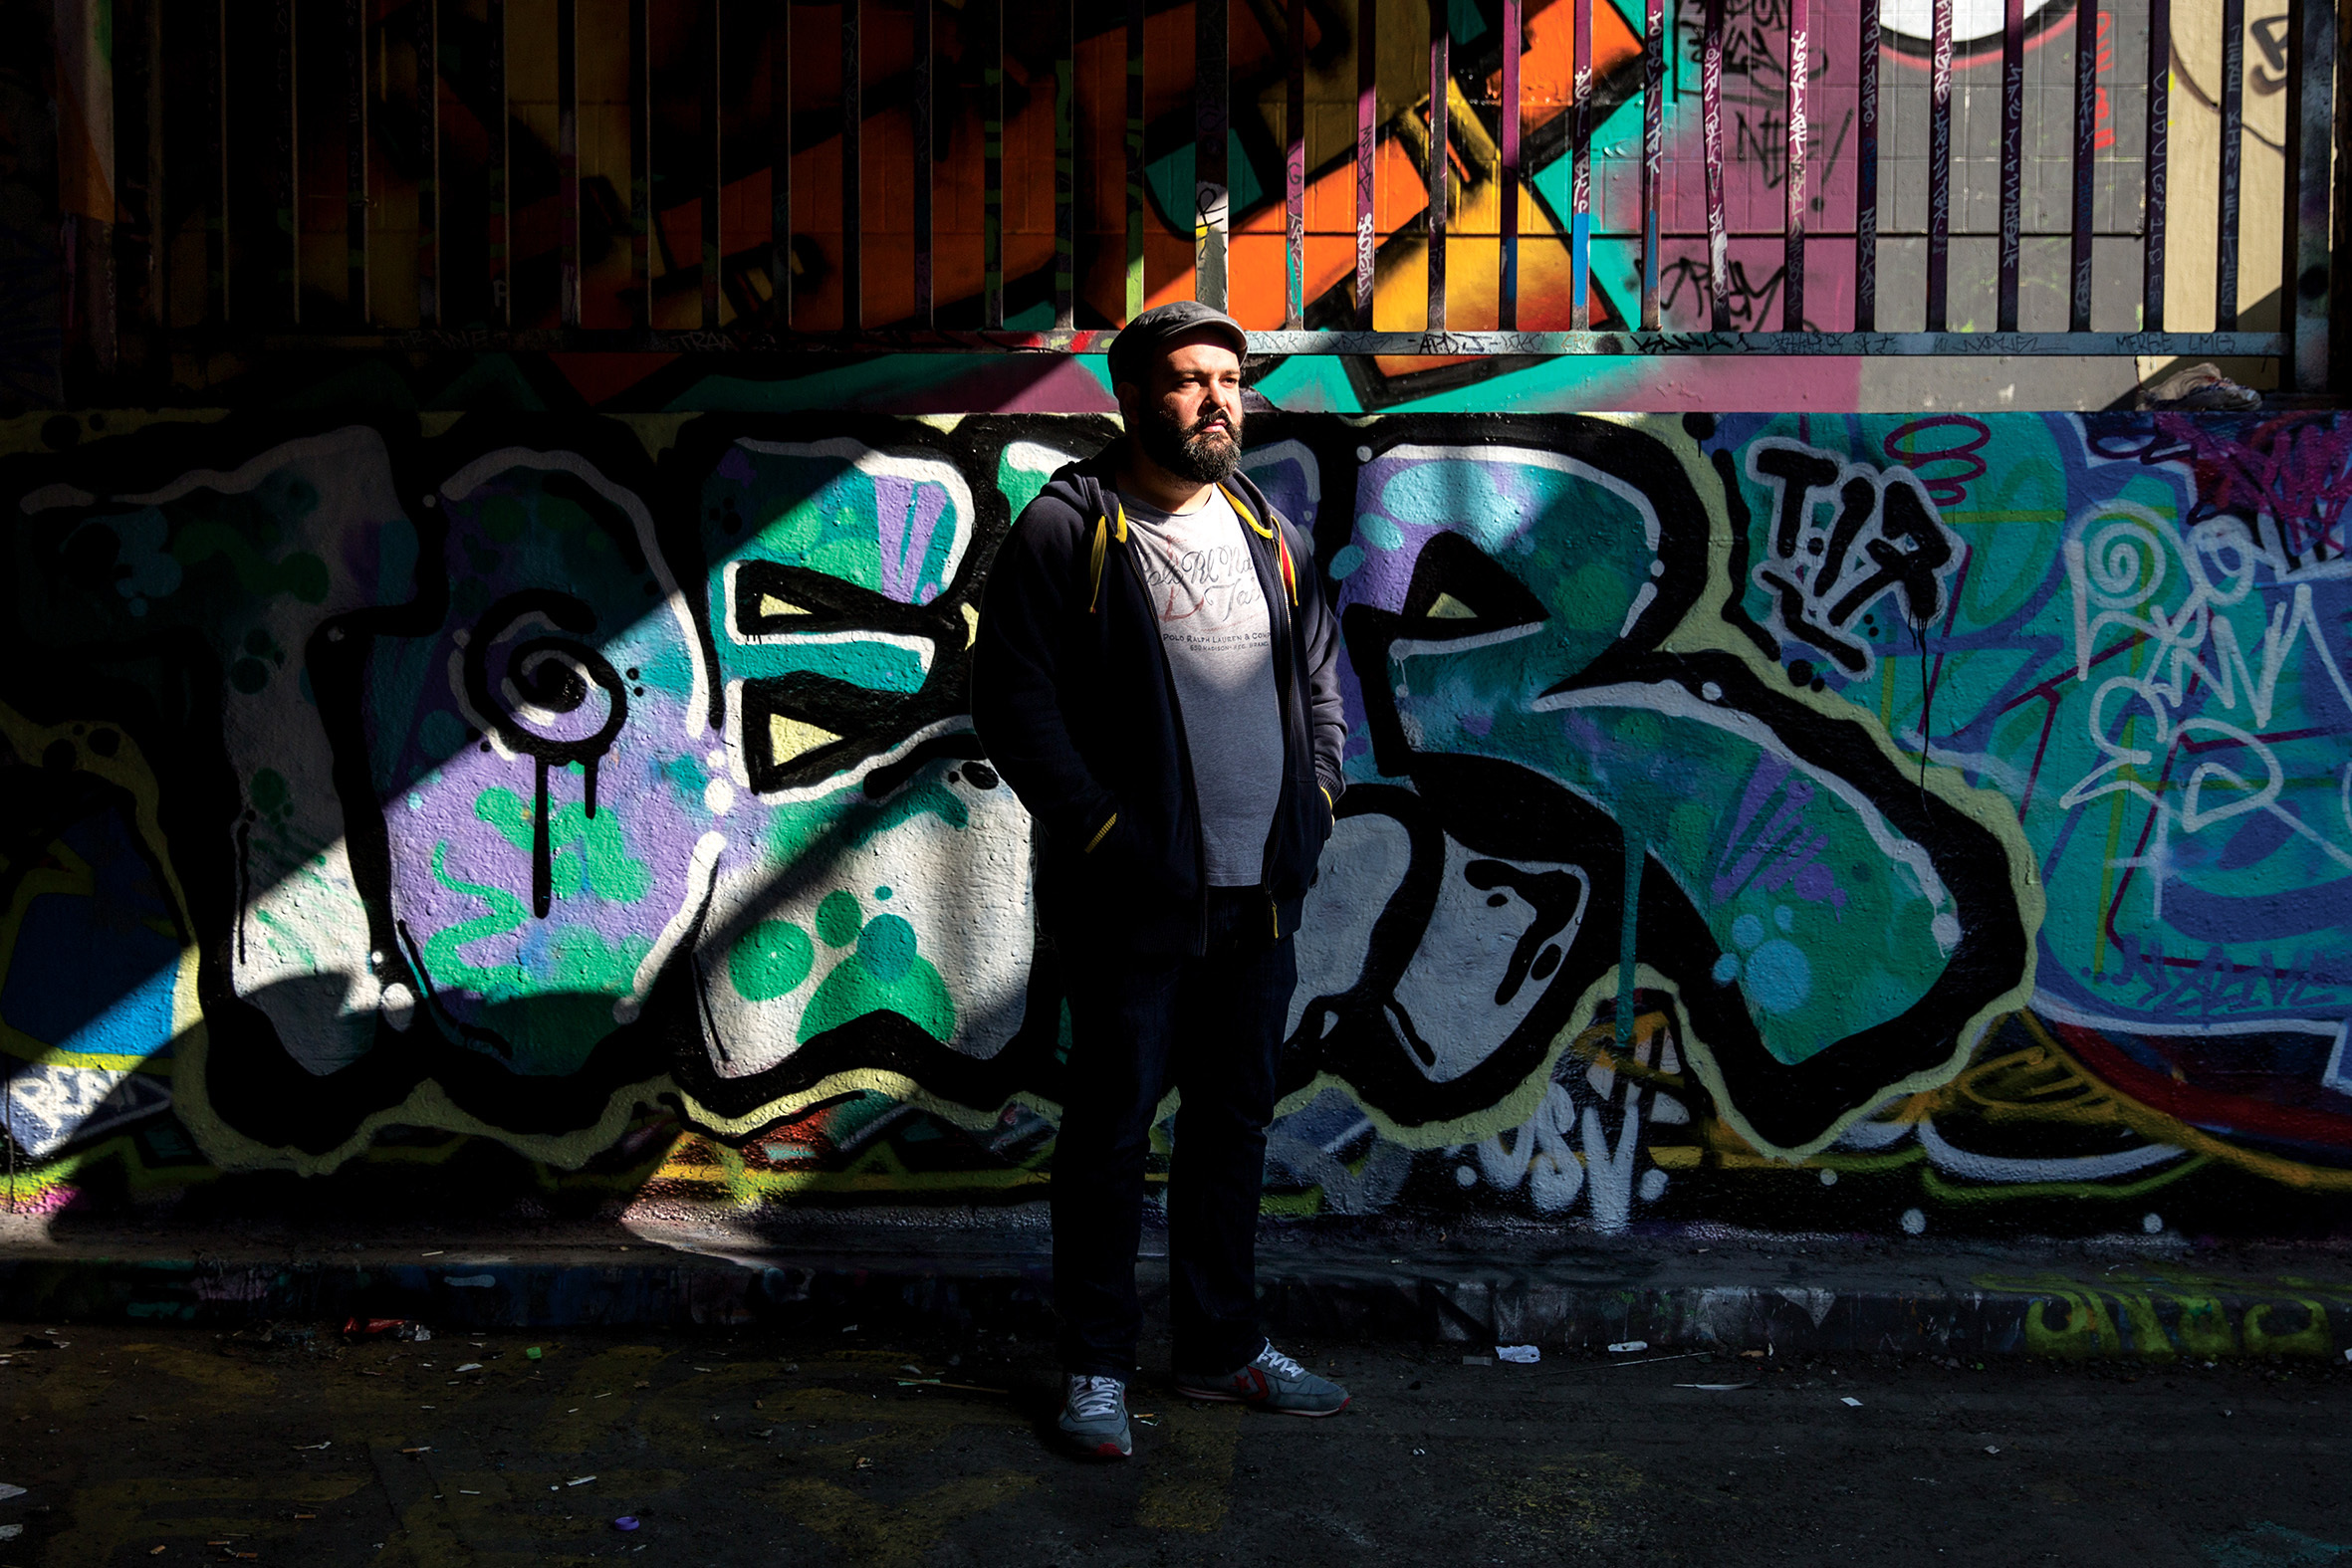 Ibrahim Fakhri is an artist who moved to London in 2013.